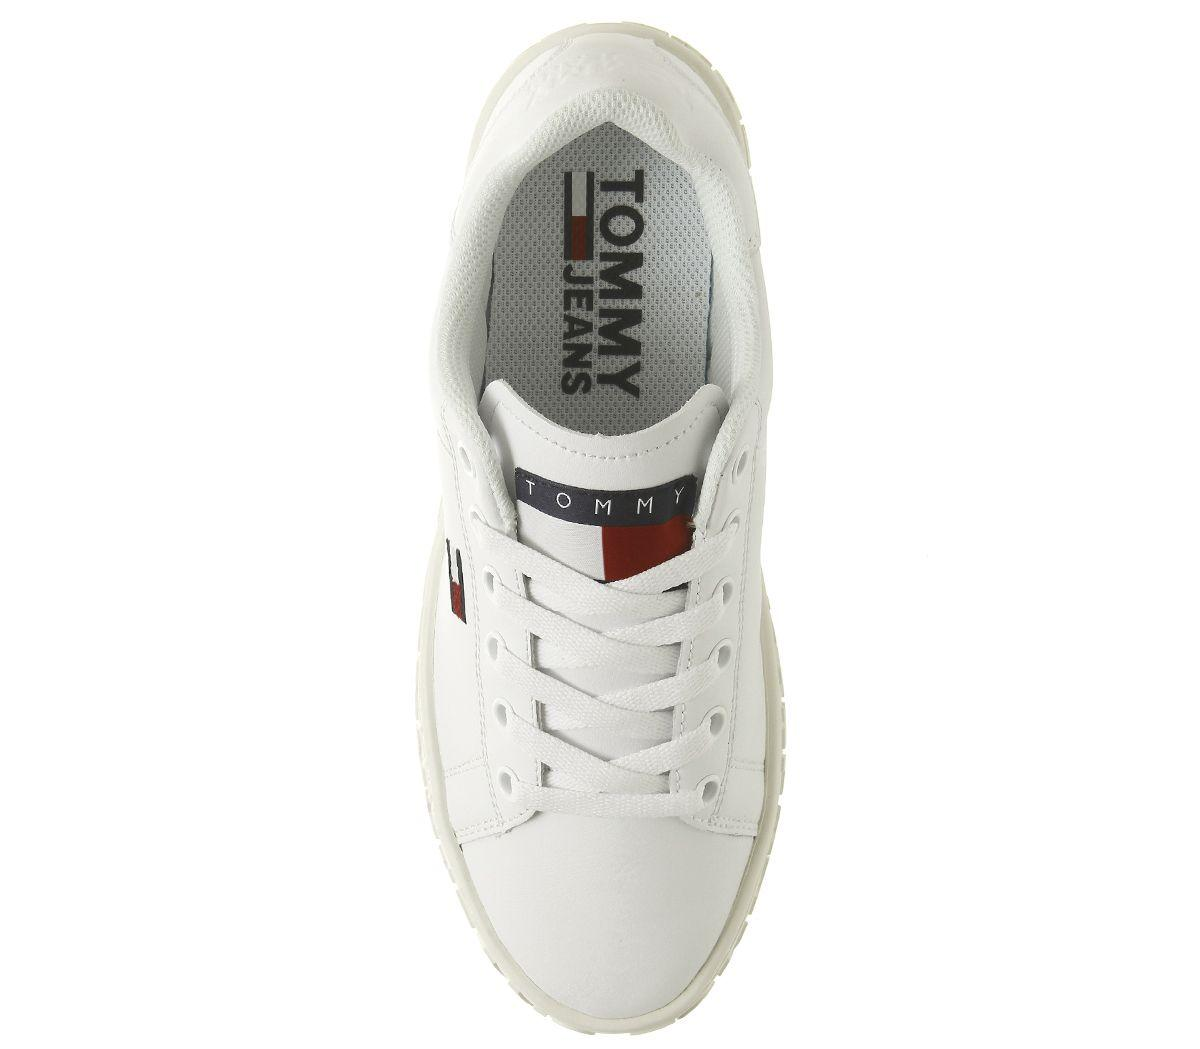 Tommy Hilfiger Leather Jaz Trainers in